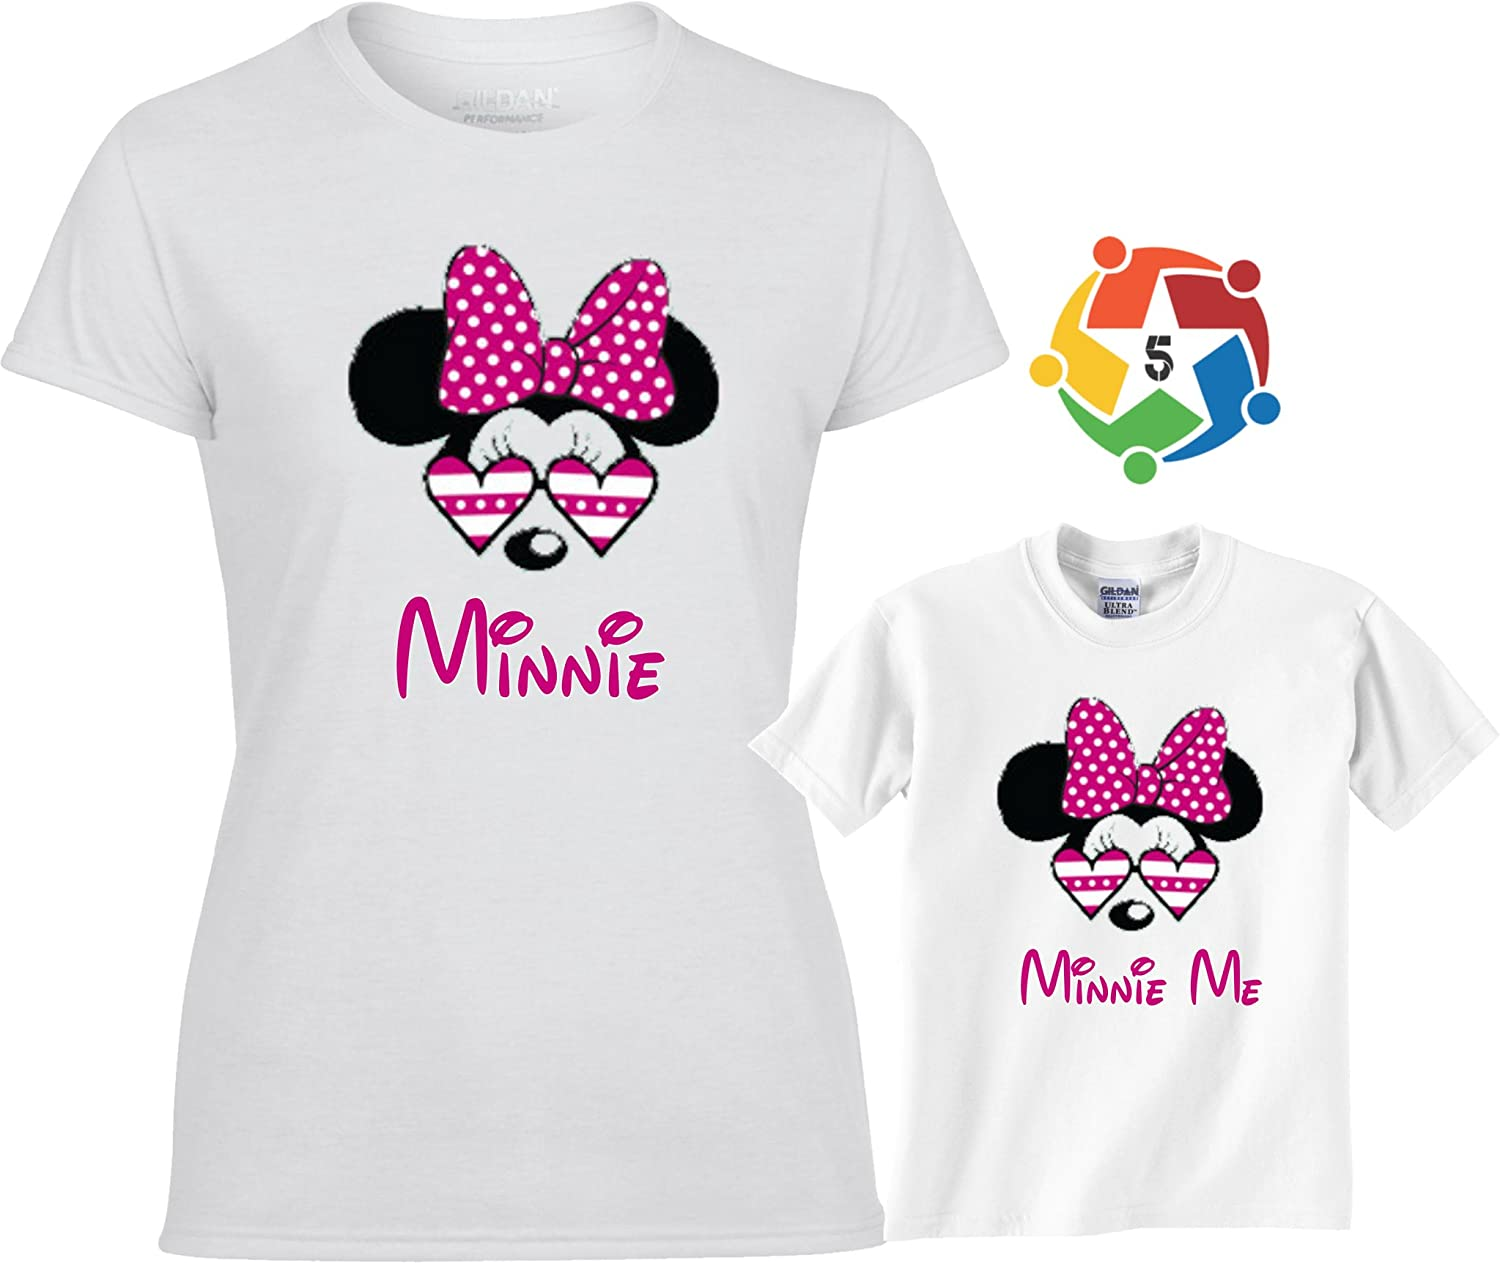 Mother Minnie and Minnie Me white t-shirt and baby grow set with red glitter